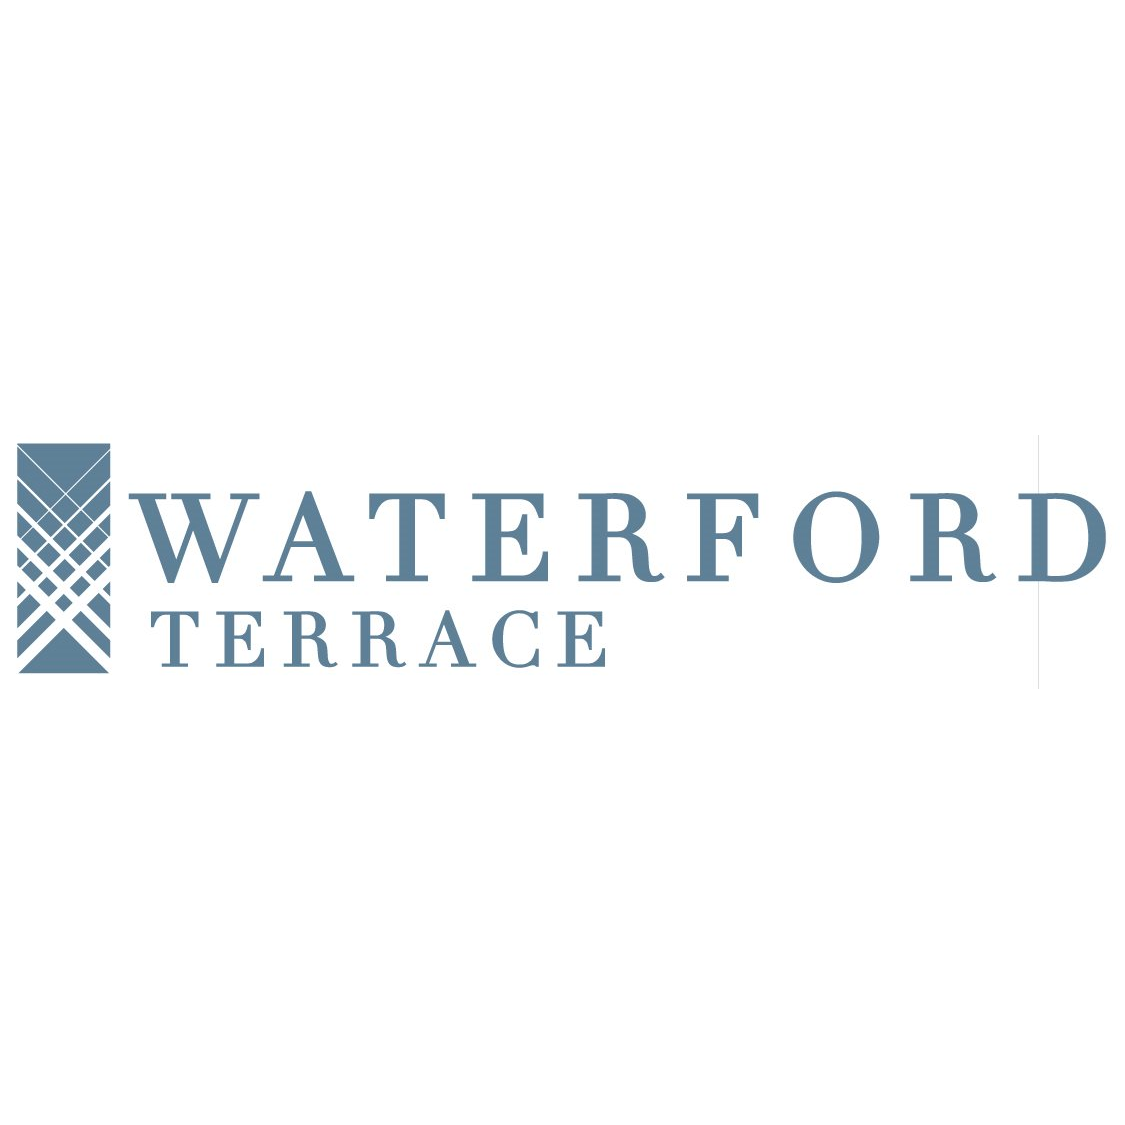 Waterford Terrace image 9